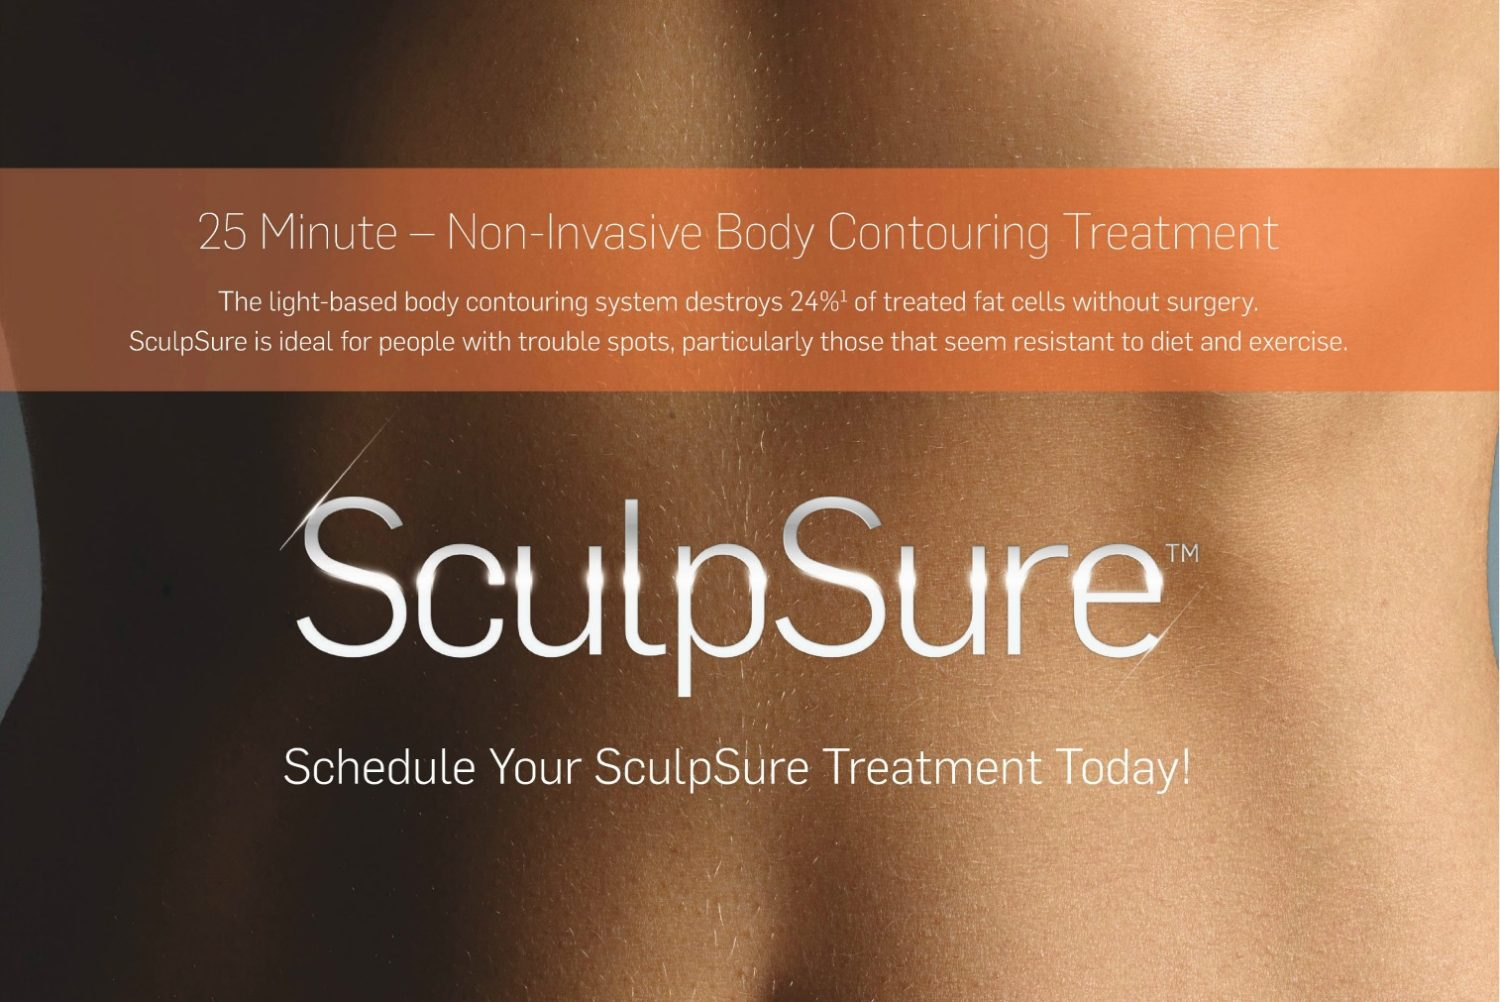 ageless splendor sculpsure